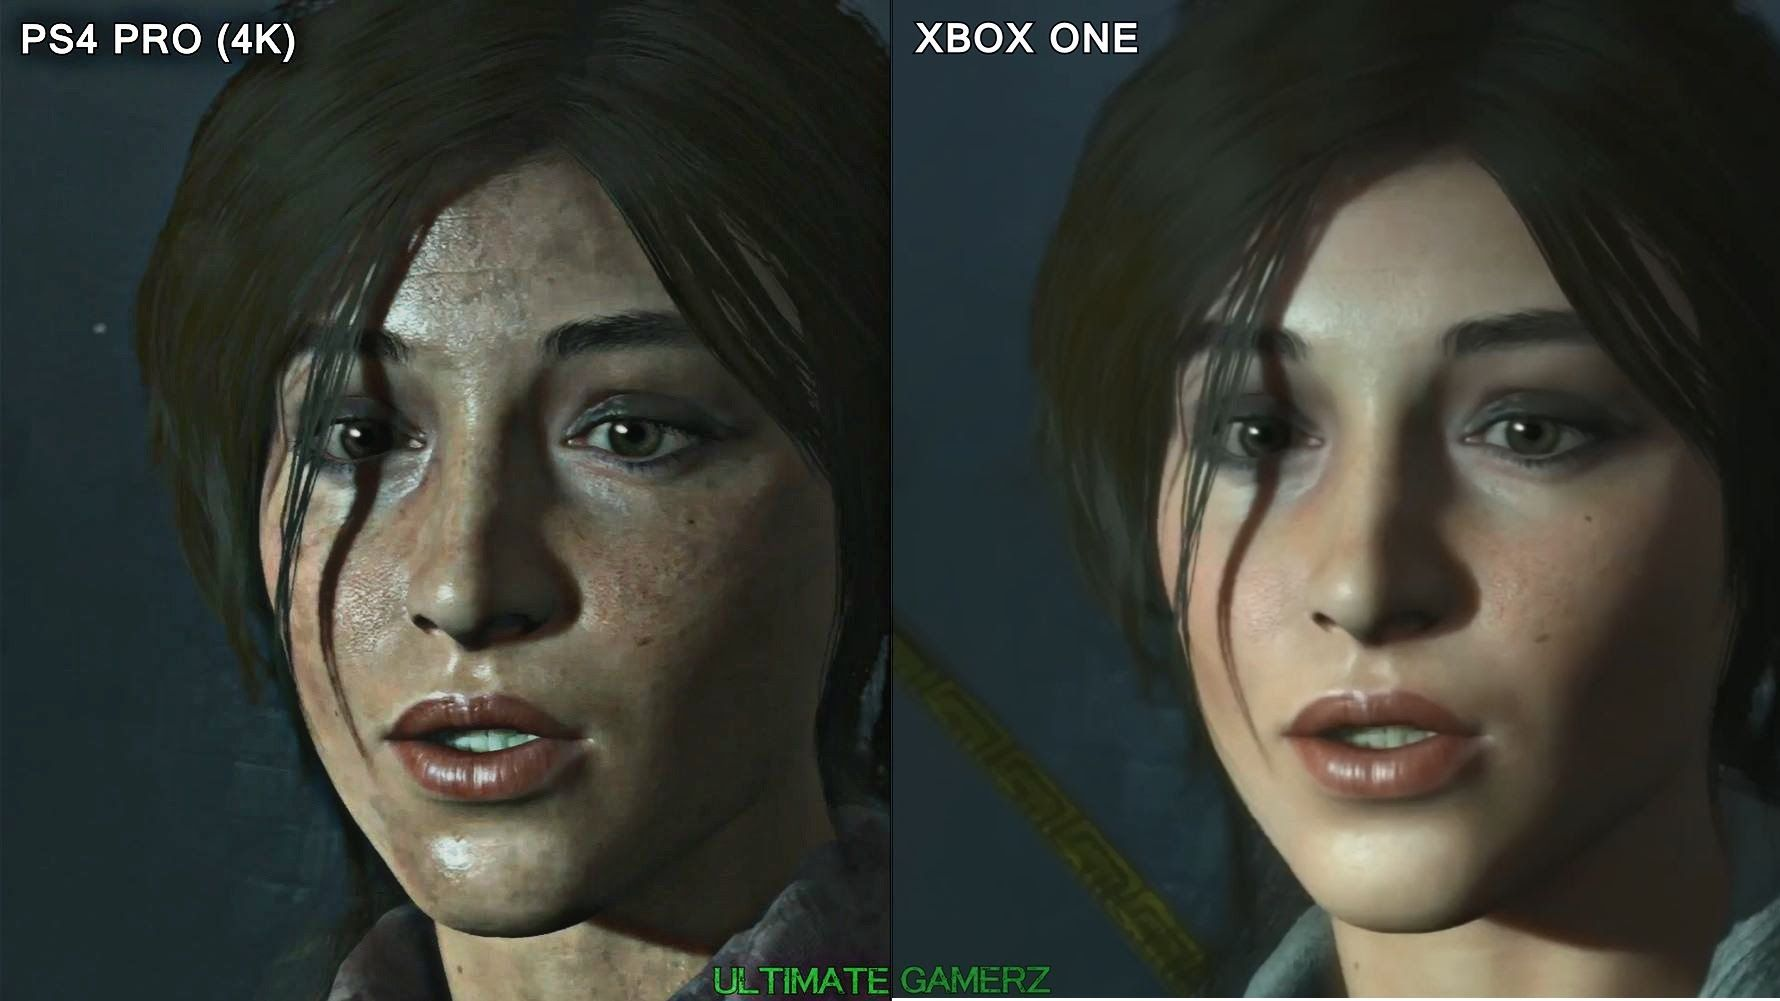 Cool Increase Of The Tomb Raider Ps4 Pro Vs Xbox 1 Graphics